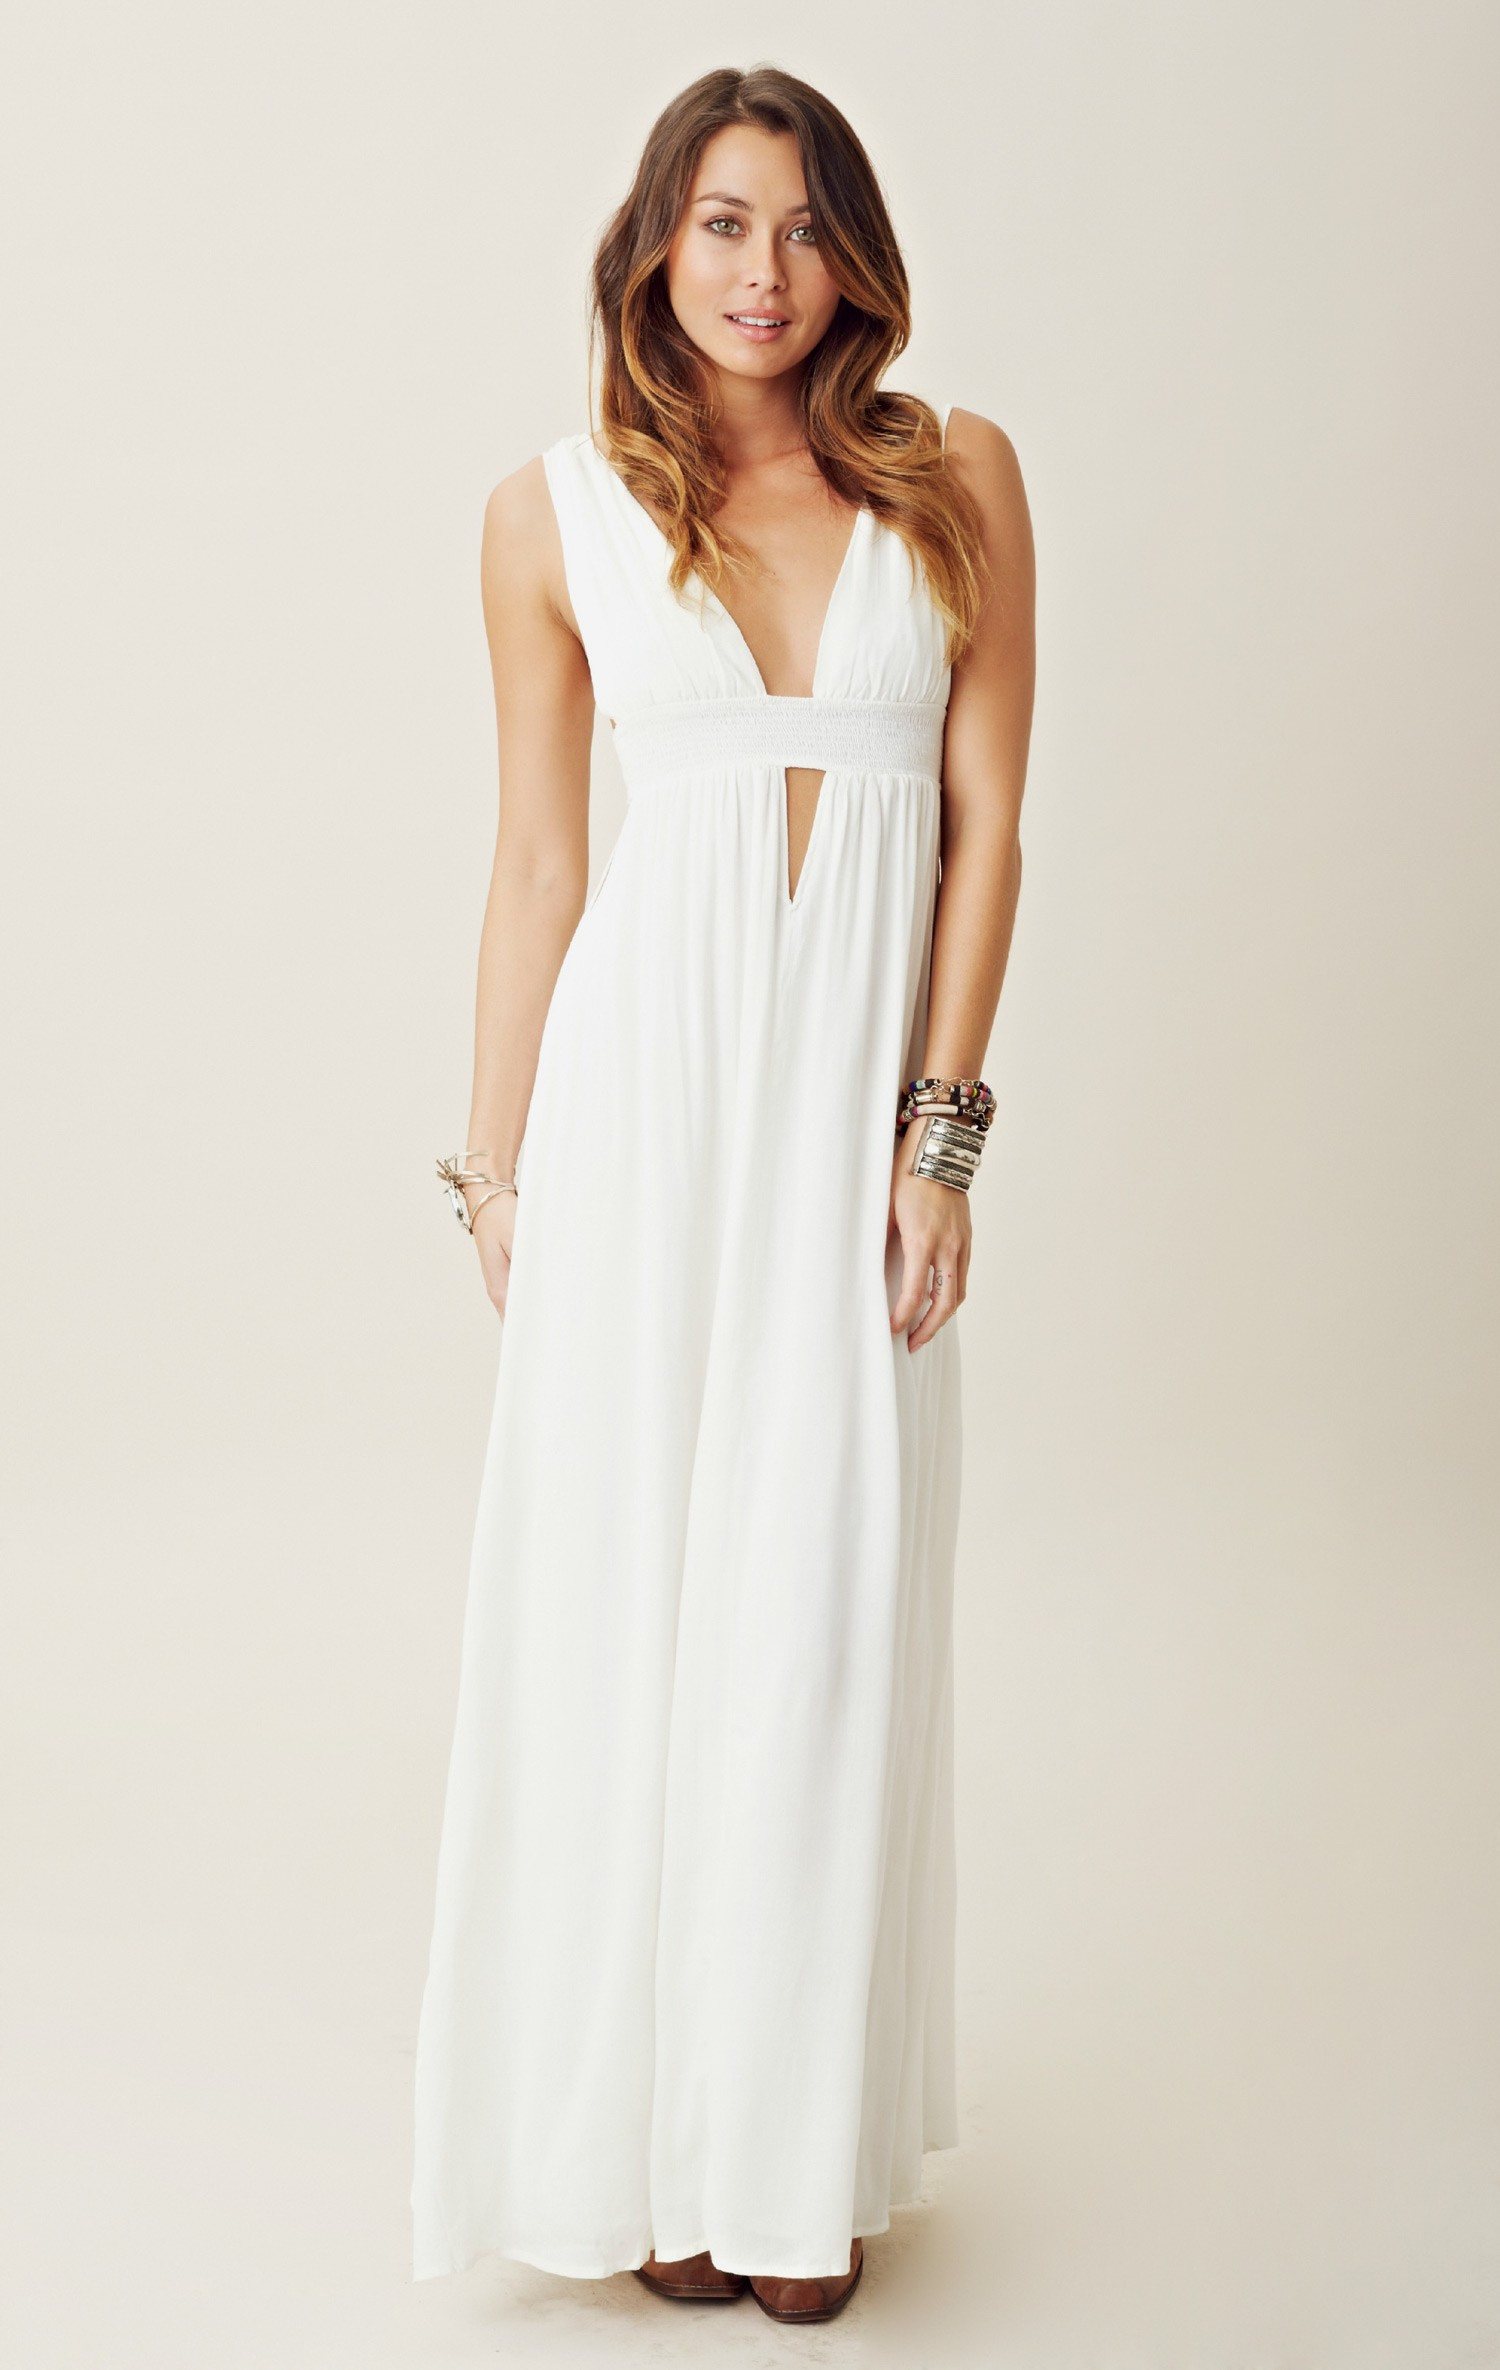 WHITE MAXI DRESS - Tamunsa Delen